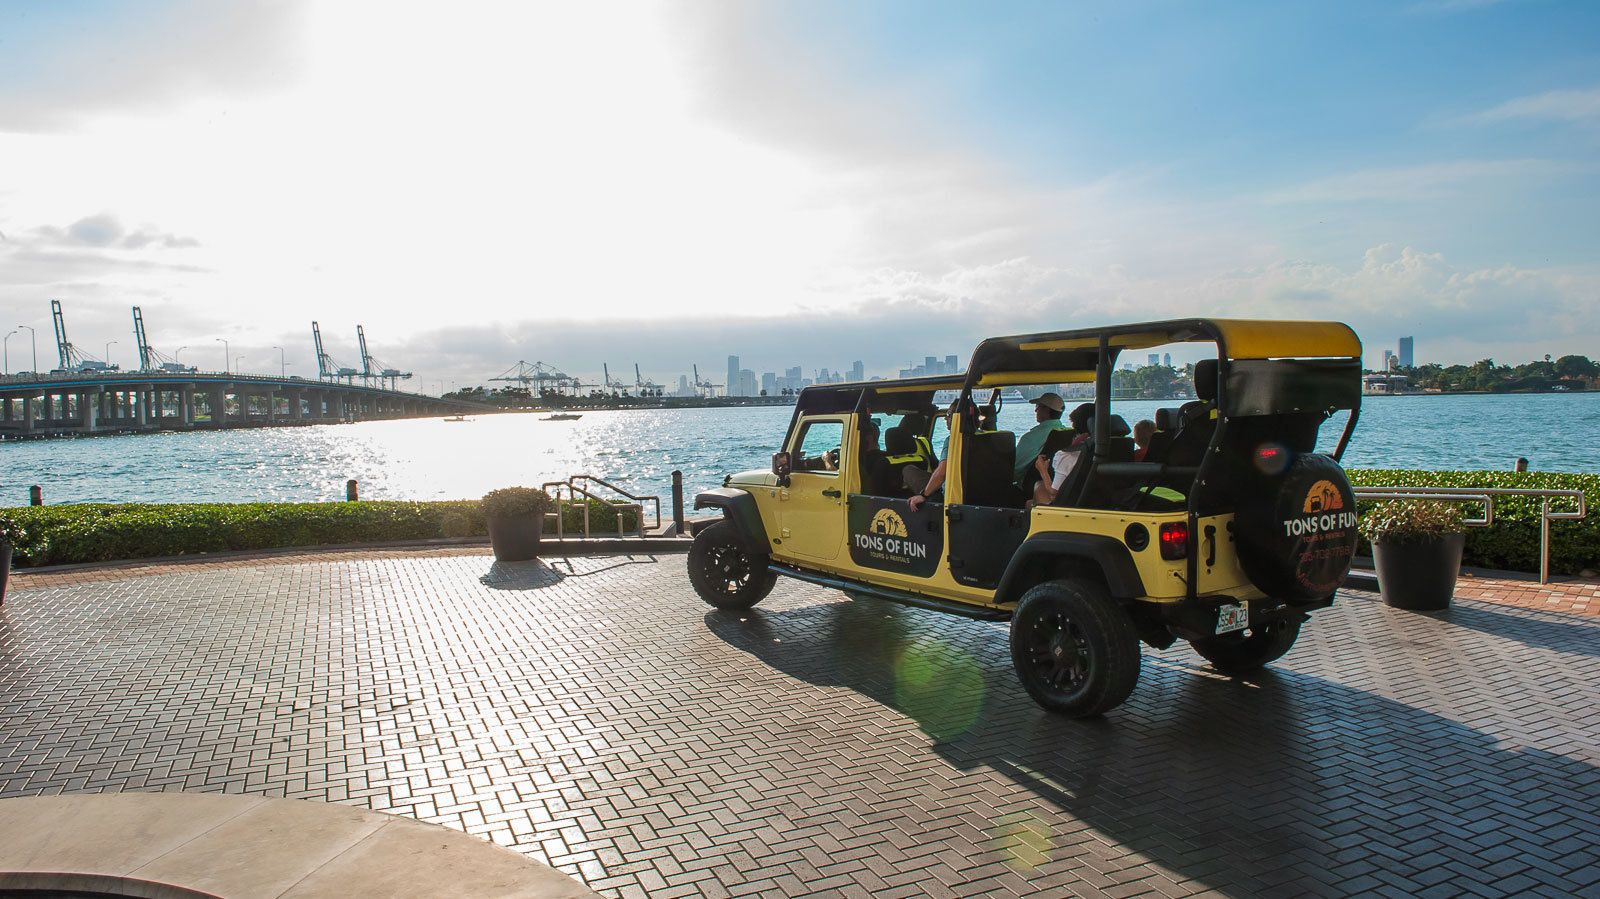 jeep vehicle with passengers parked near the water in Miami